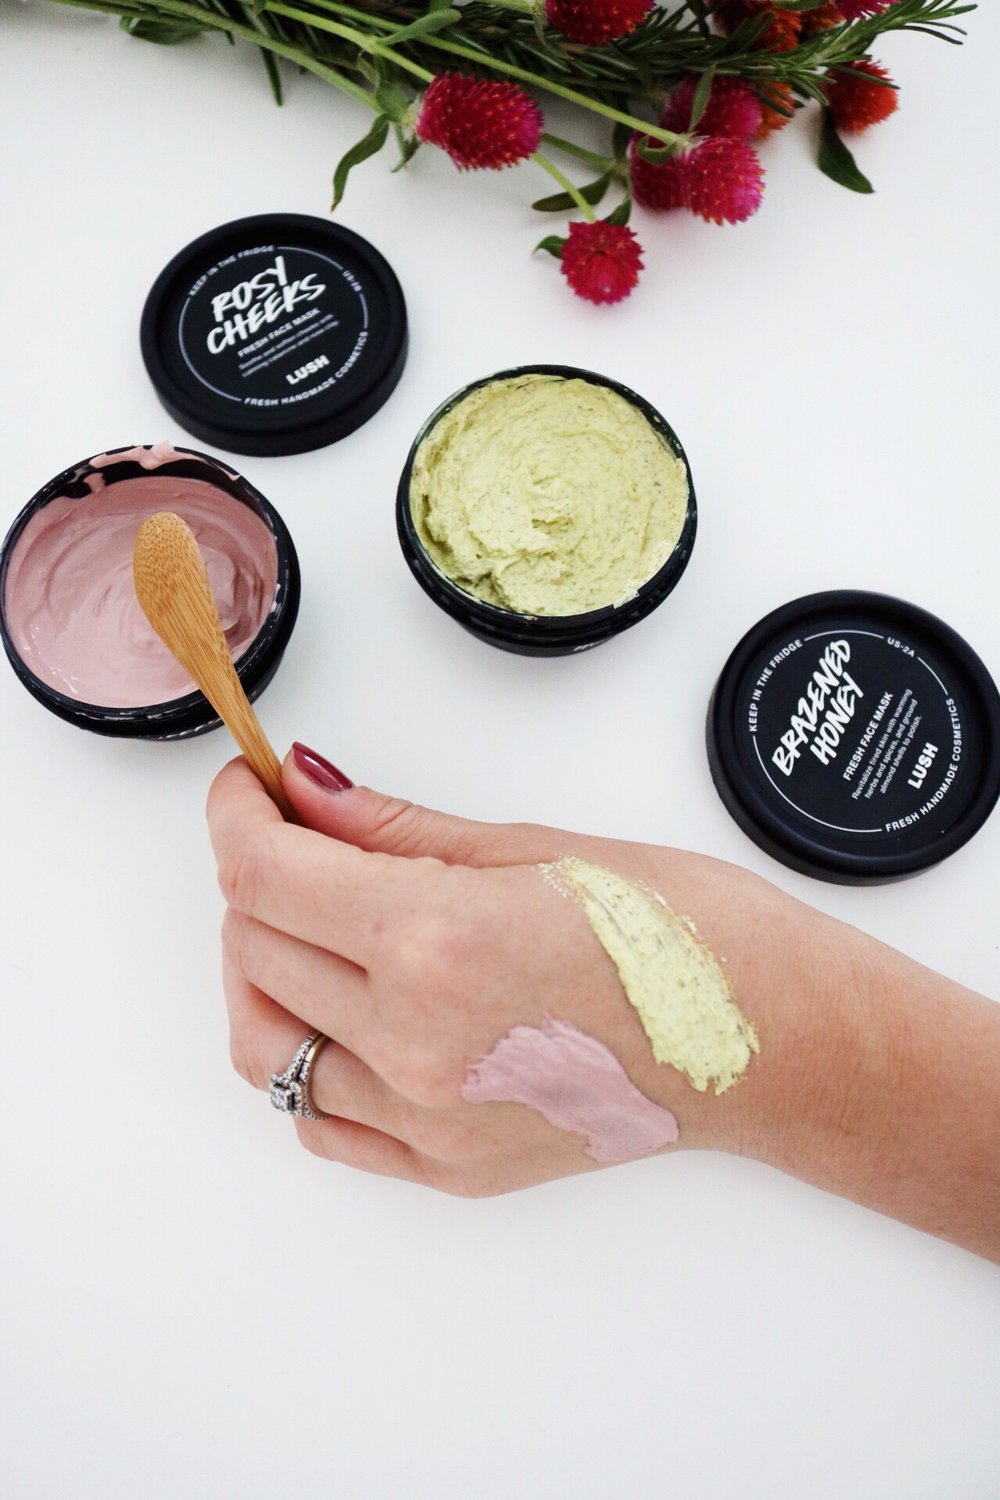 Lush Cosmetics, Fresh Face Masks, Fresh Ingredients, Rose Scented, Honey Scented